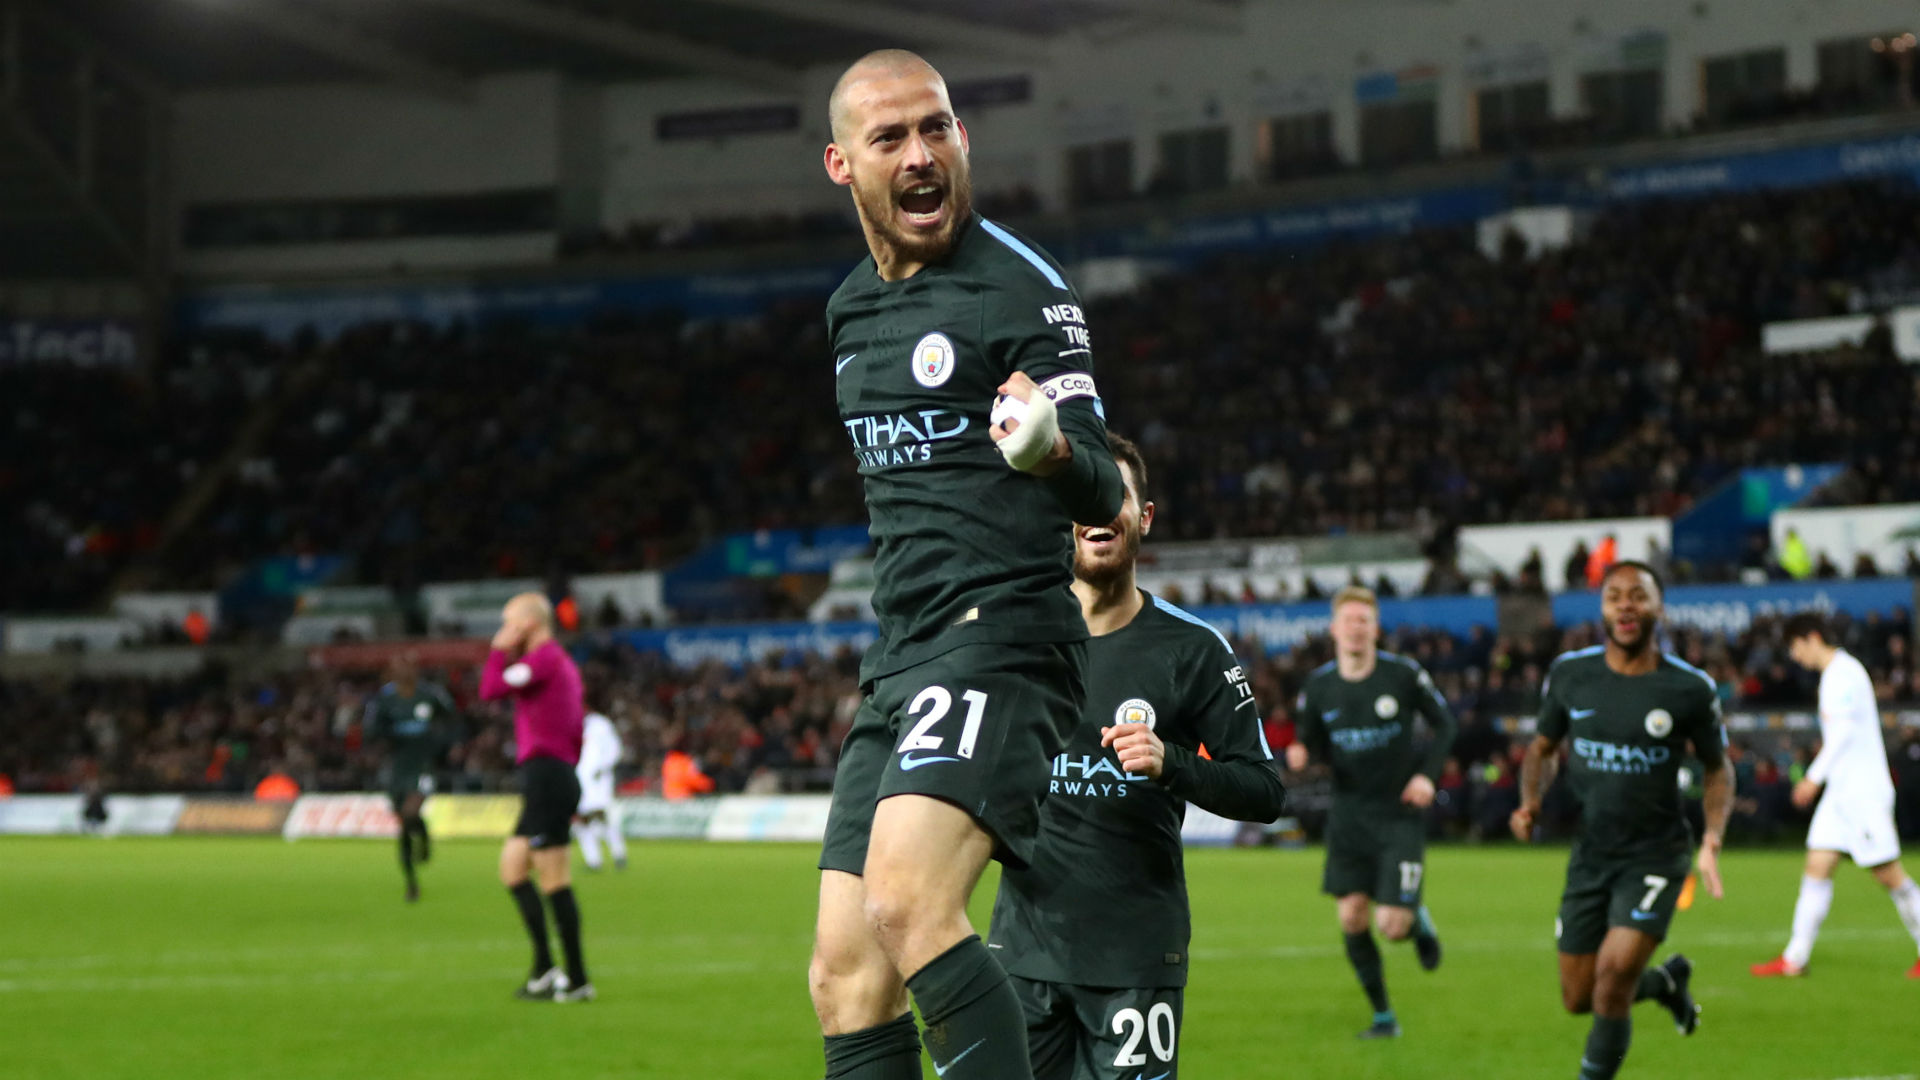 Manchester City in 'frightening' form, Rose says